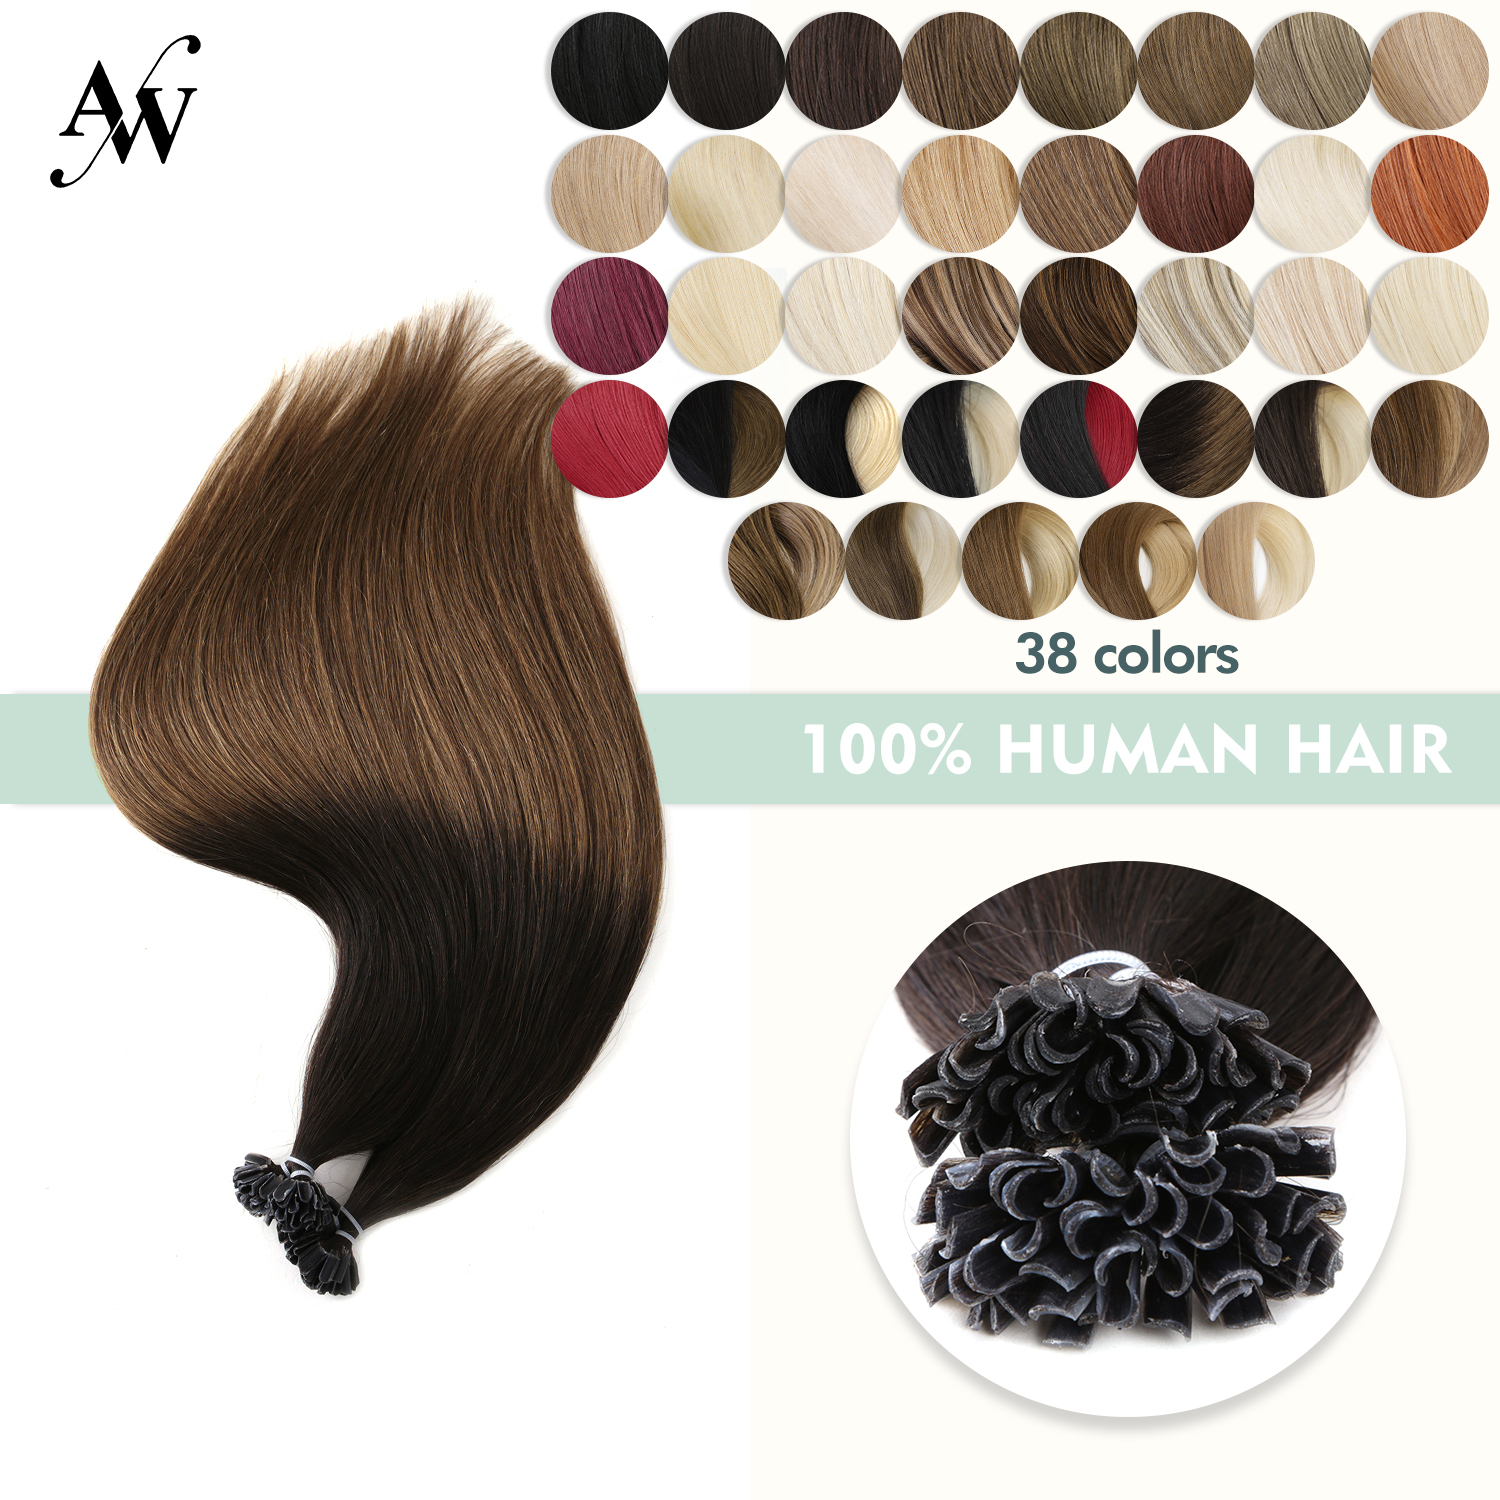 Aw 12'' 16'' 20'' 24''28'' Straight Keratin Pre-bonded U Tip Hair Extensions Machine Made Remy Capsule Fusion Nail Human Hair By Scientific Process